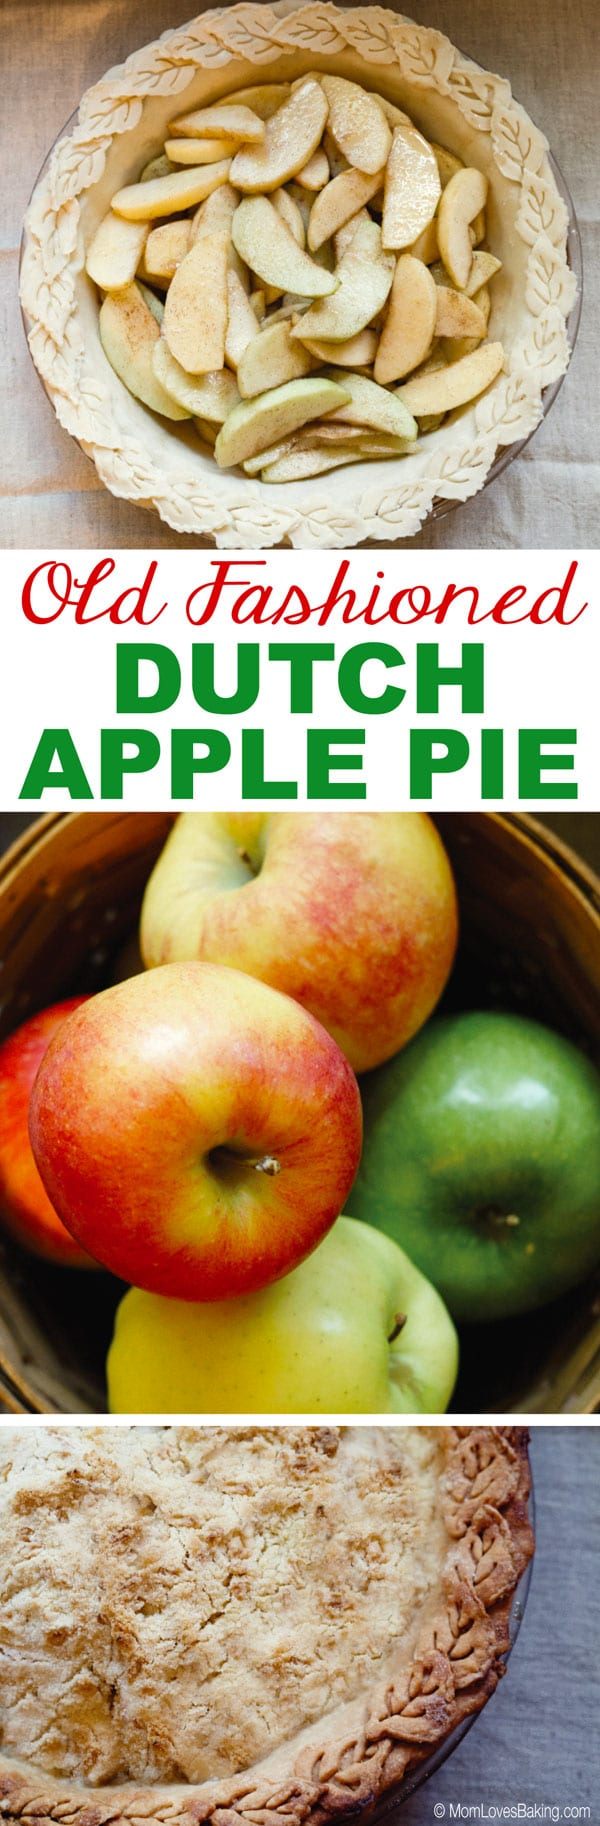 Old fashioned dutch apple pie